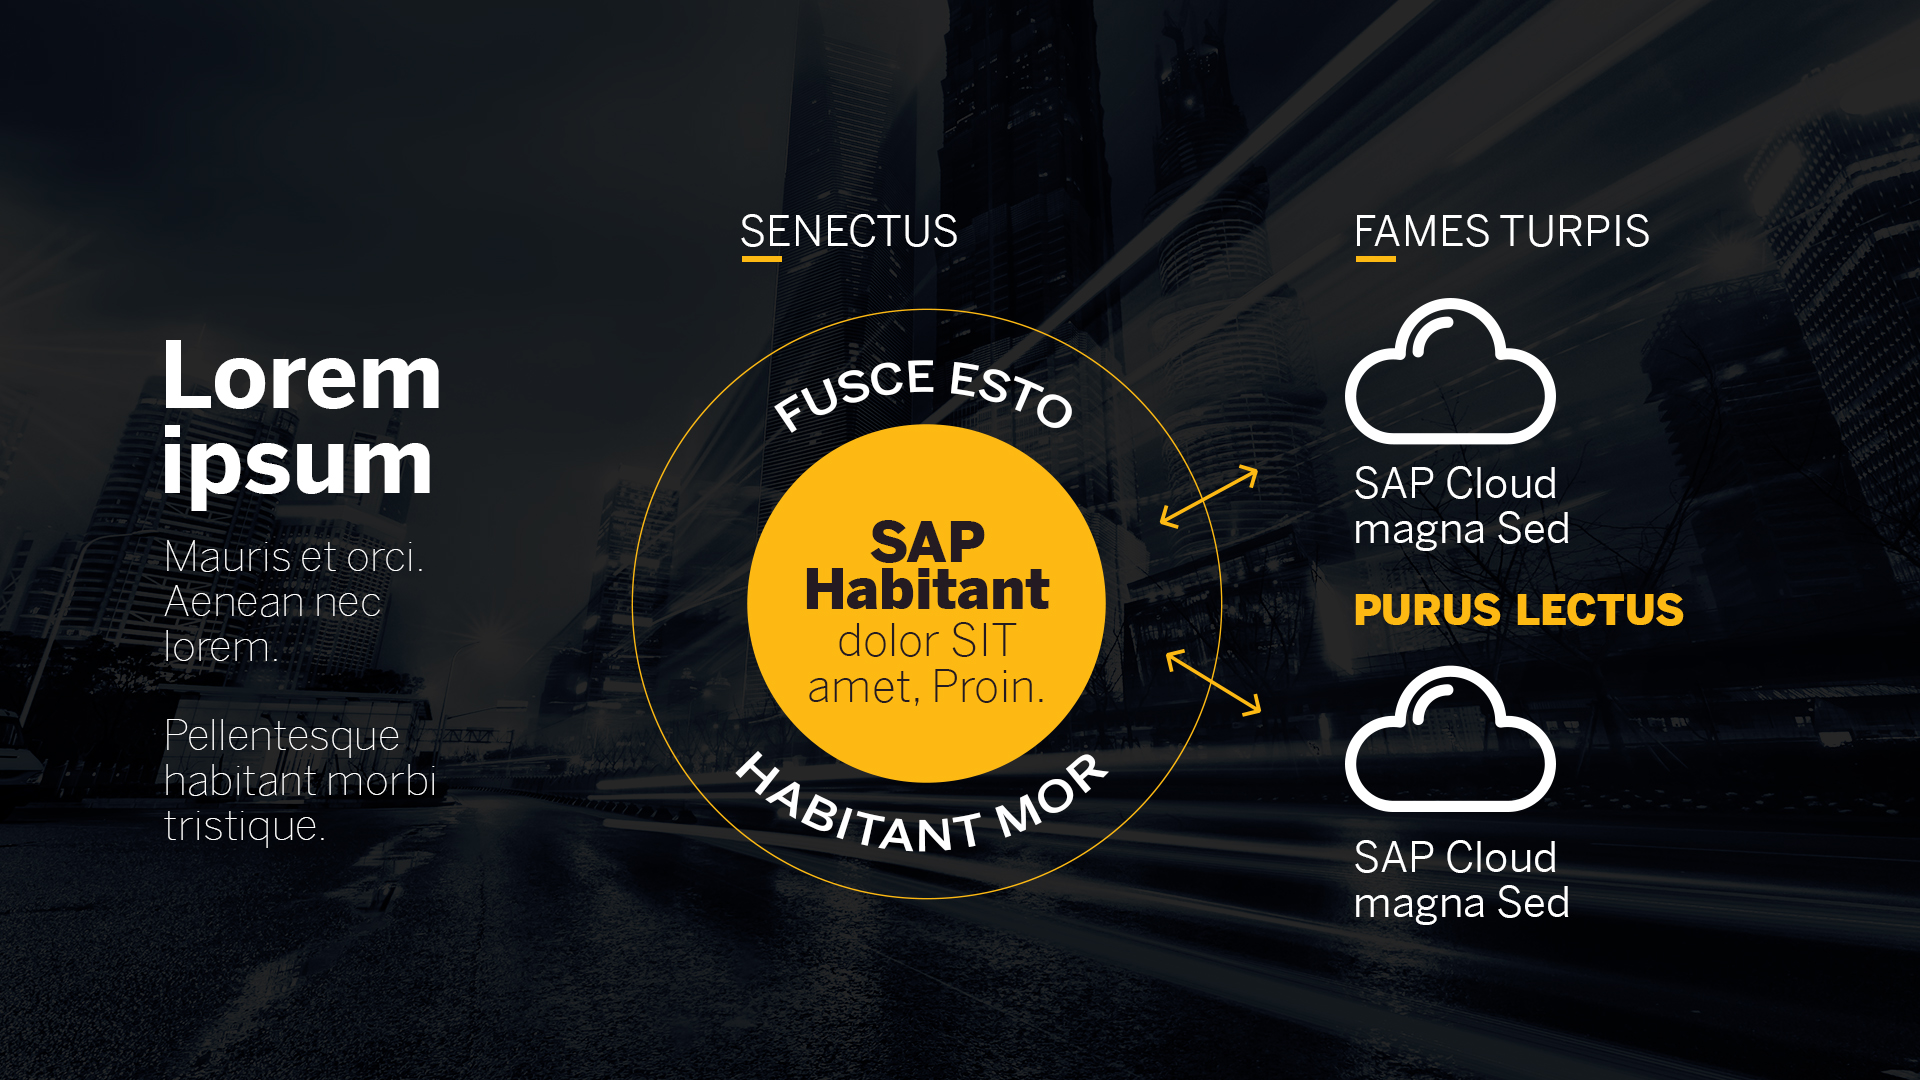 SAP Roadshow Digital Transformation Tour - Onigrama Apresentações de slides